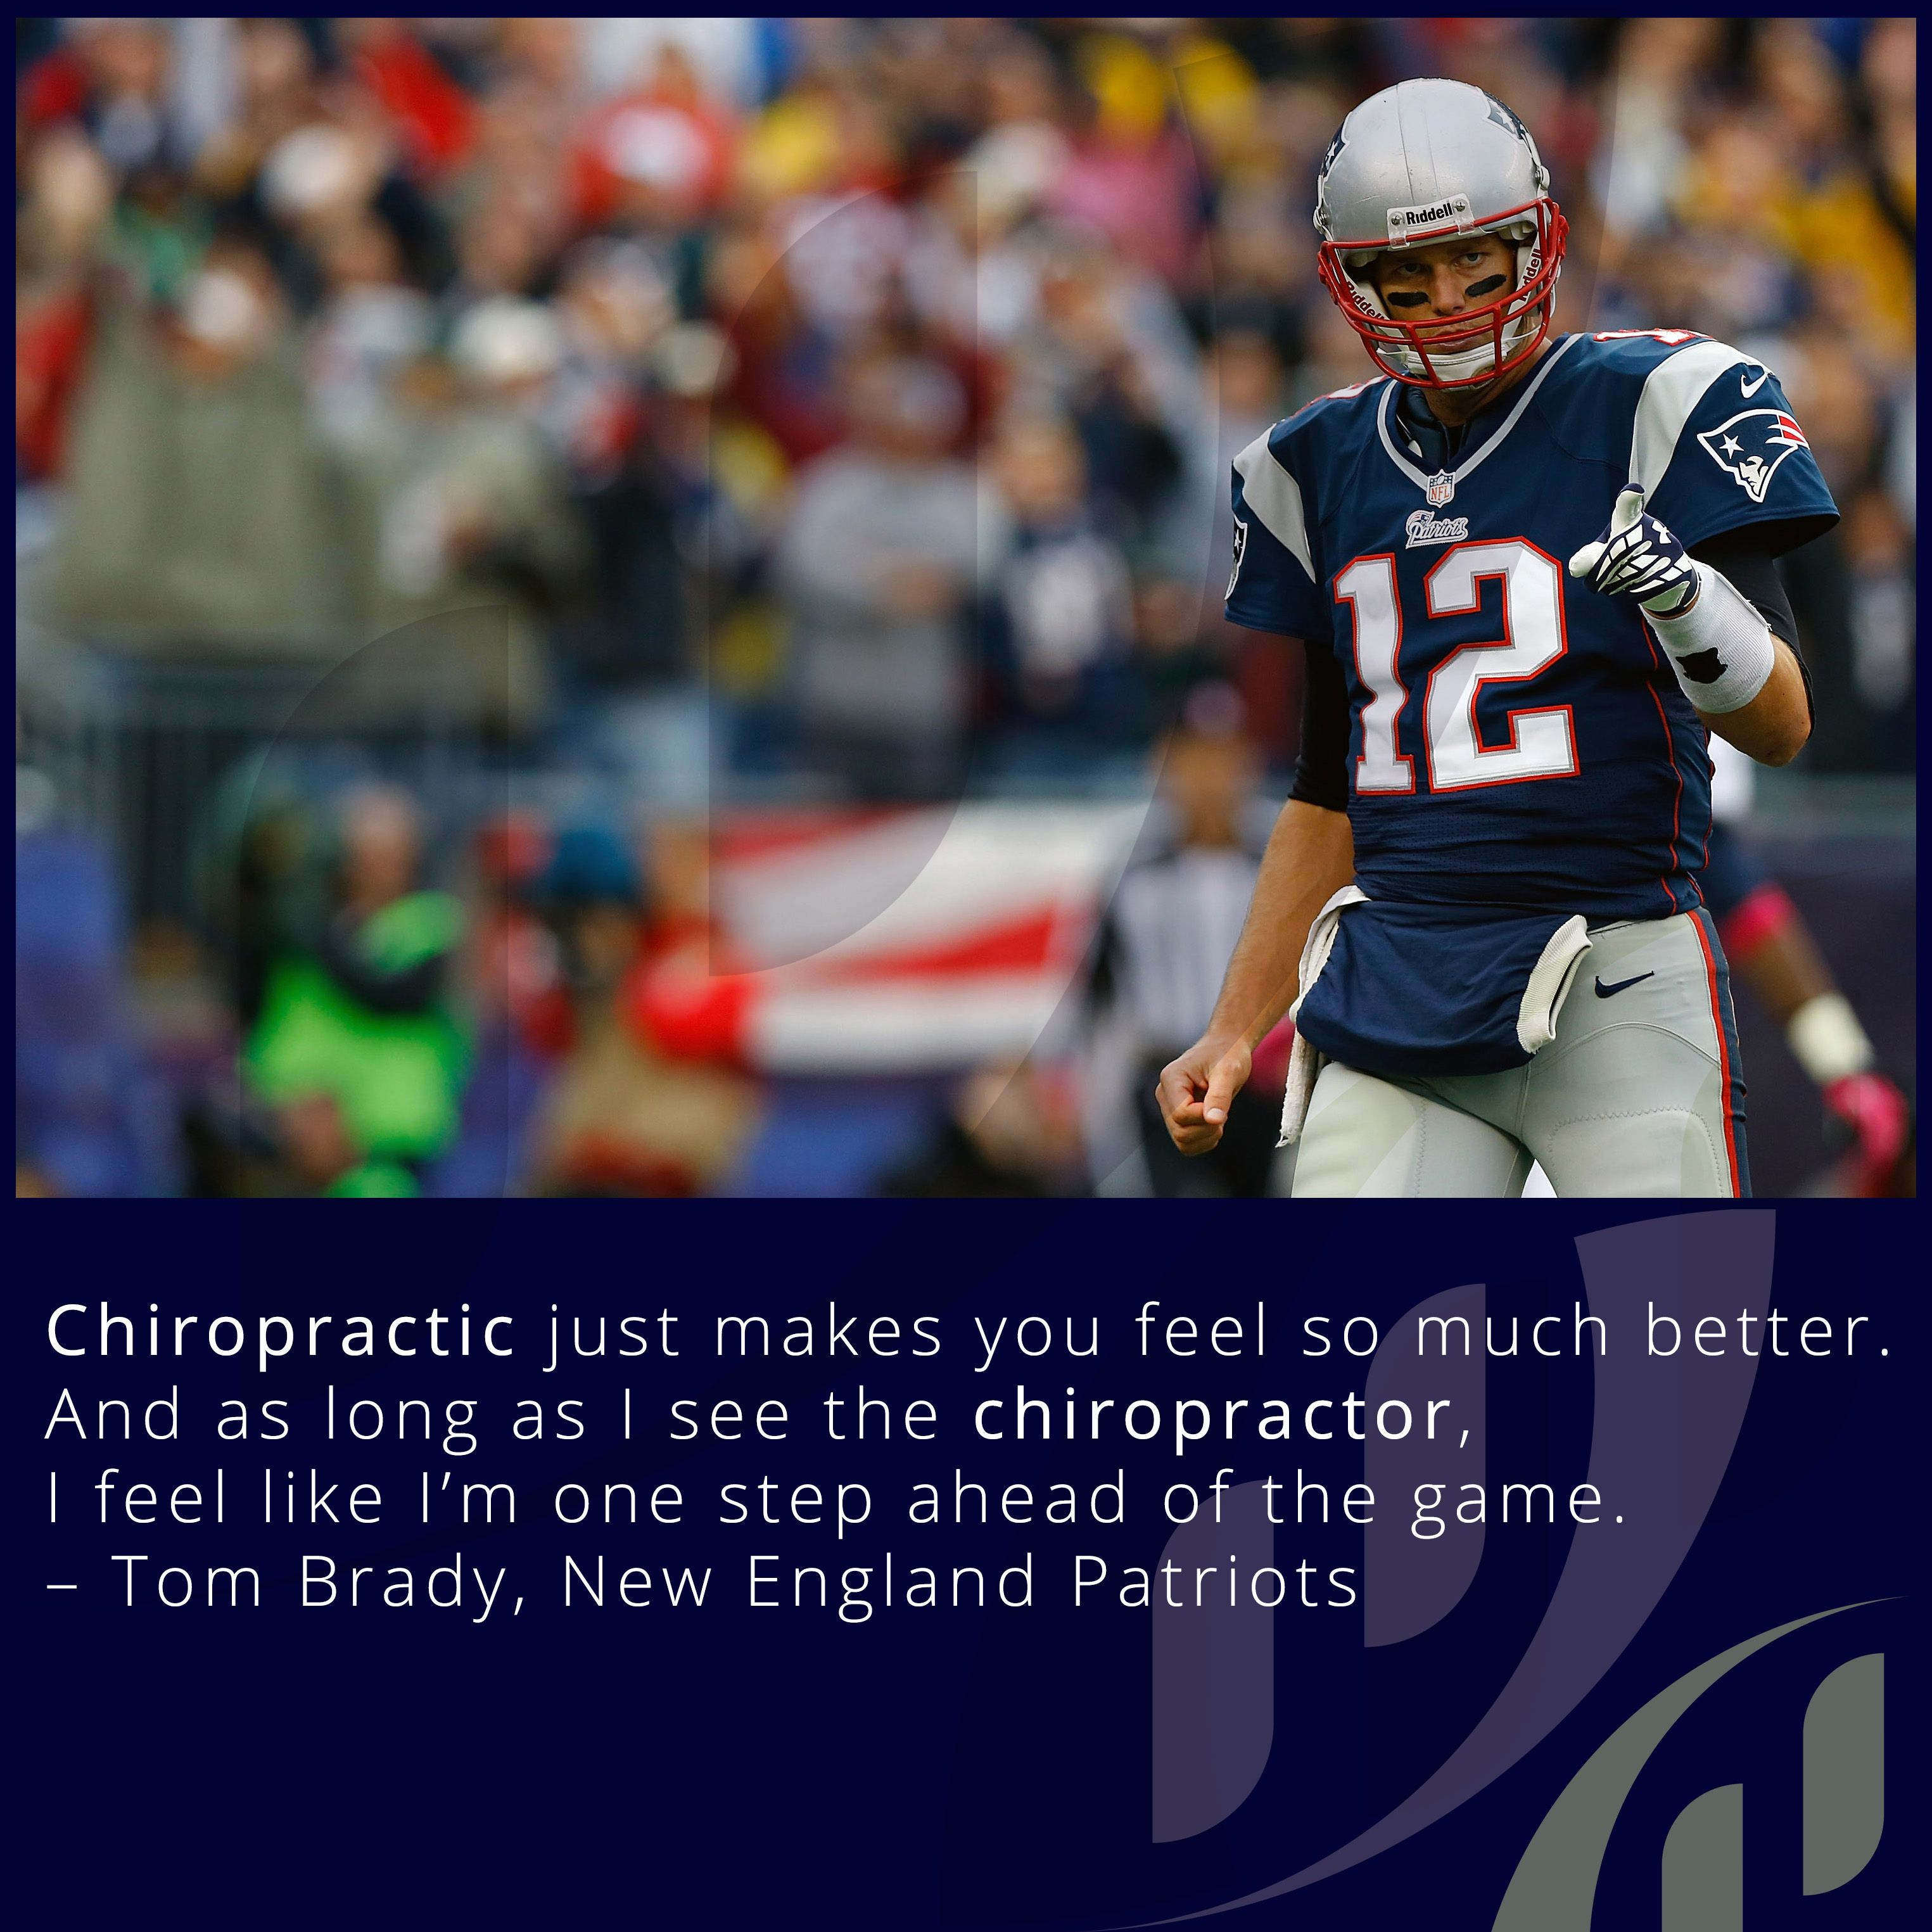 Chiropractic just makes you feel so much better and as